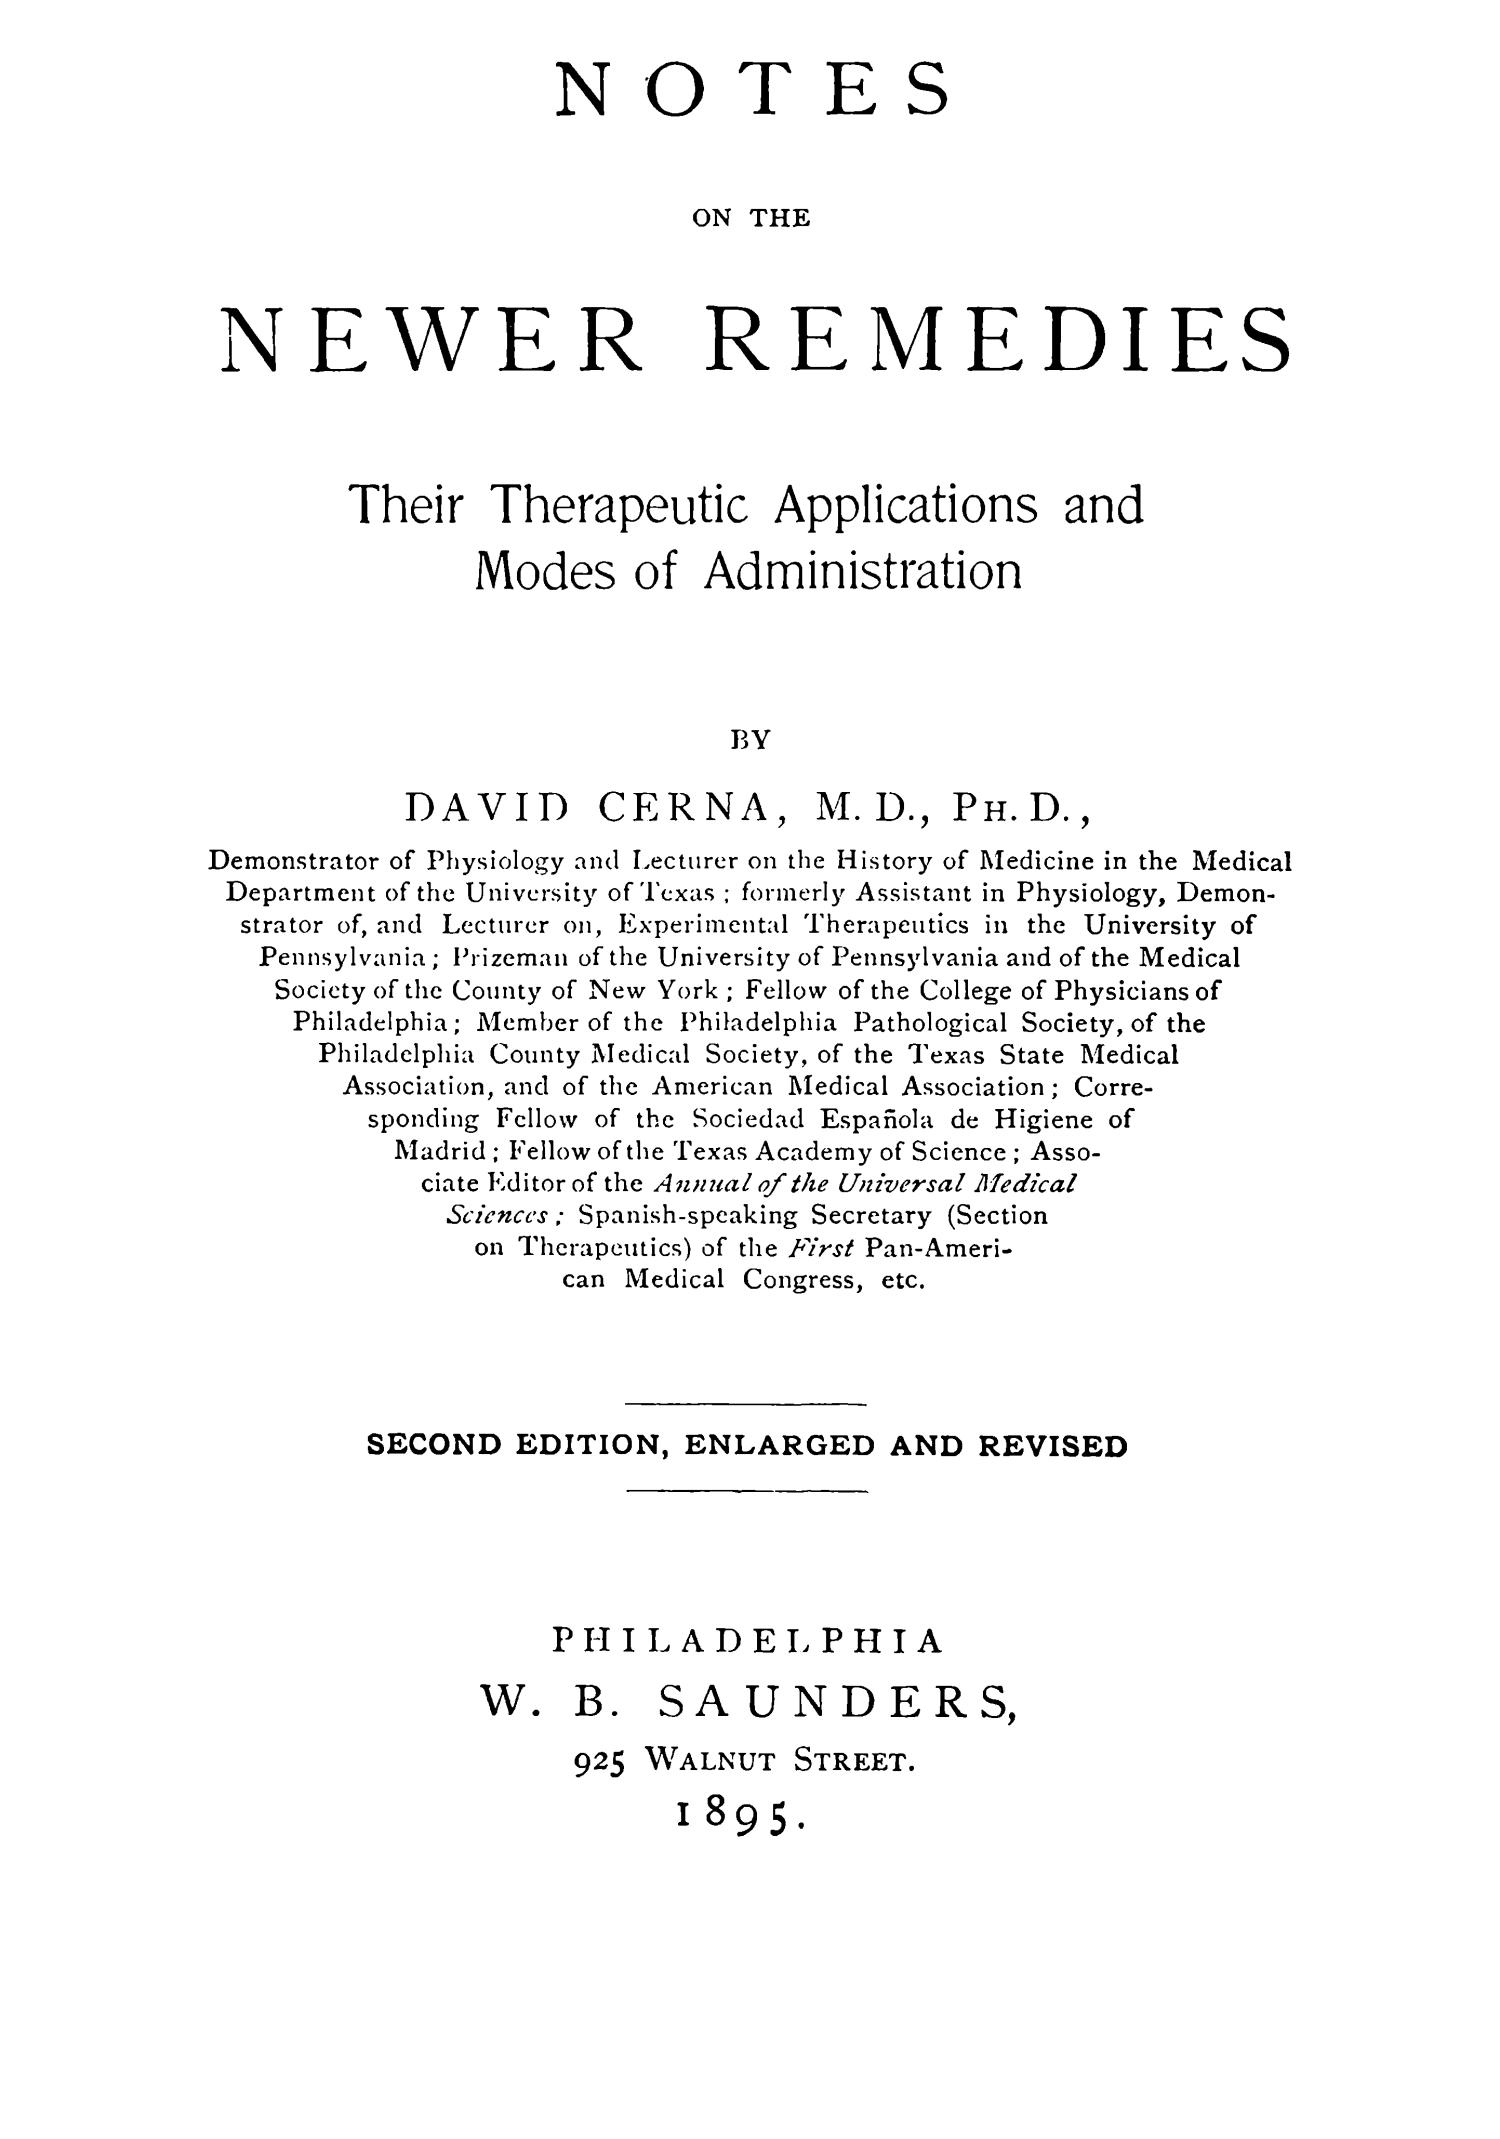 Notes on the Newer Remedies: Their Therapeutic Applications and Modes of Administration, Second Edition                                                                                                      Title Page